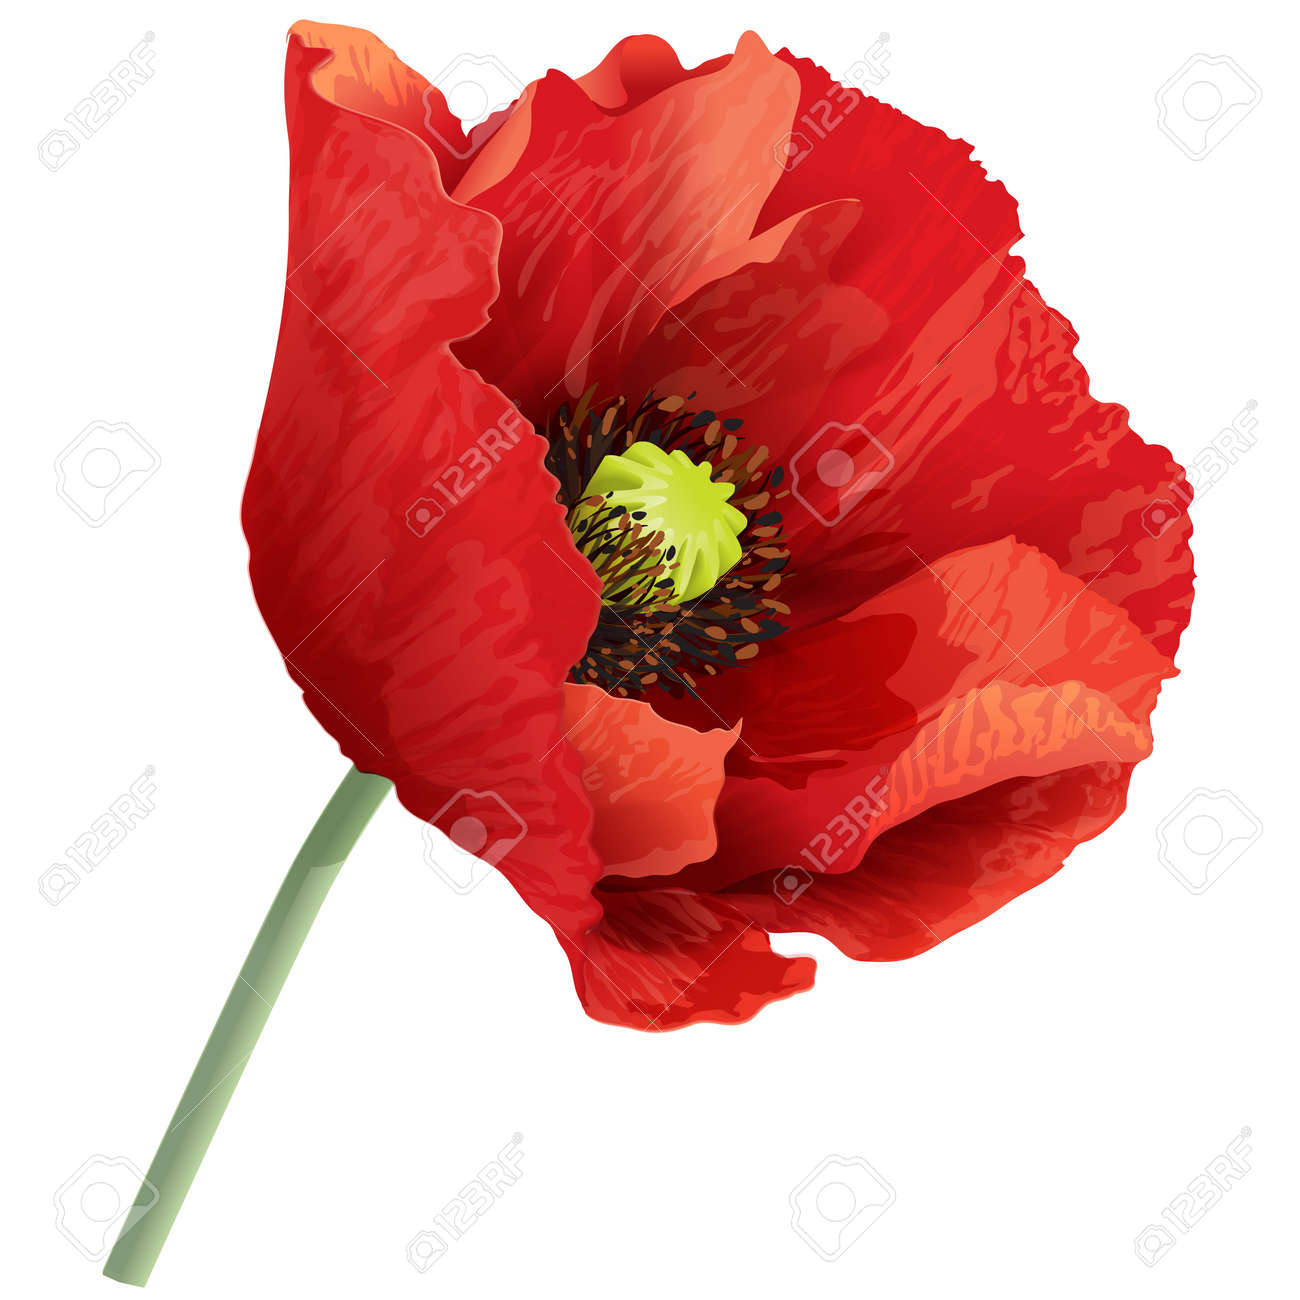 Vector Illustration Of Red Poppy Flower On A Green Stem Royalty